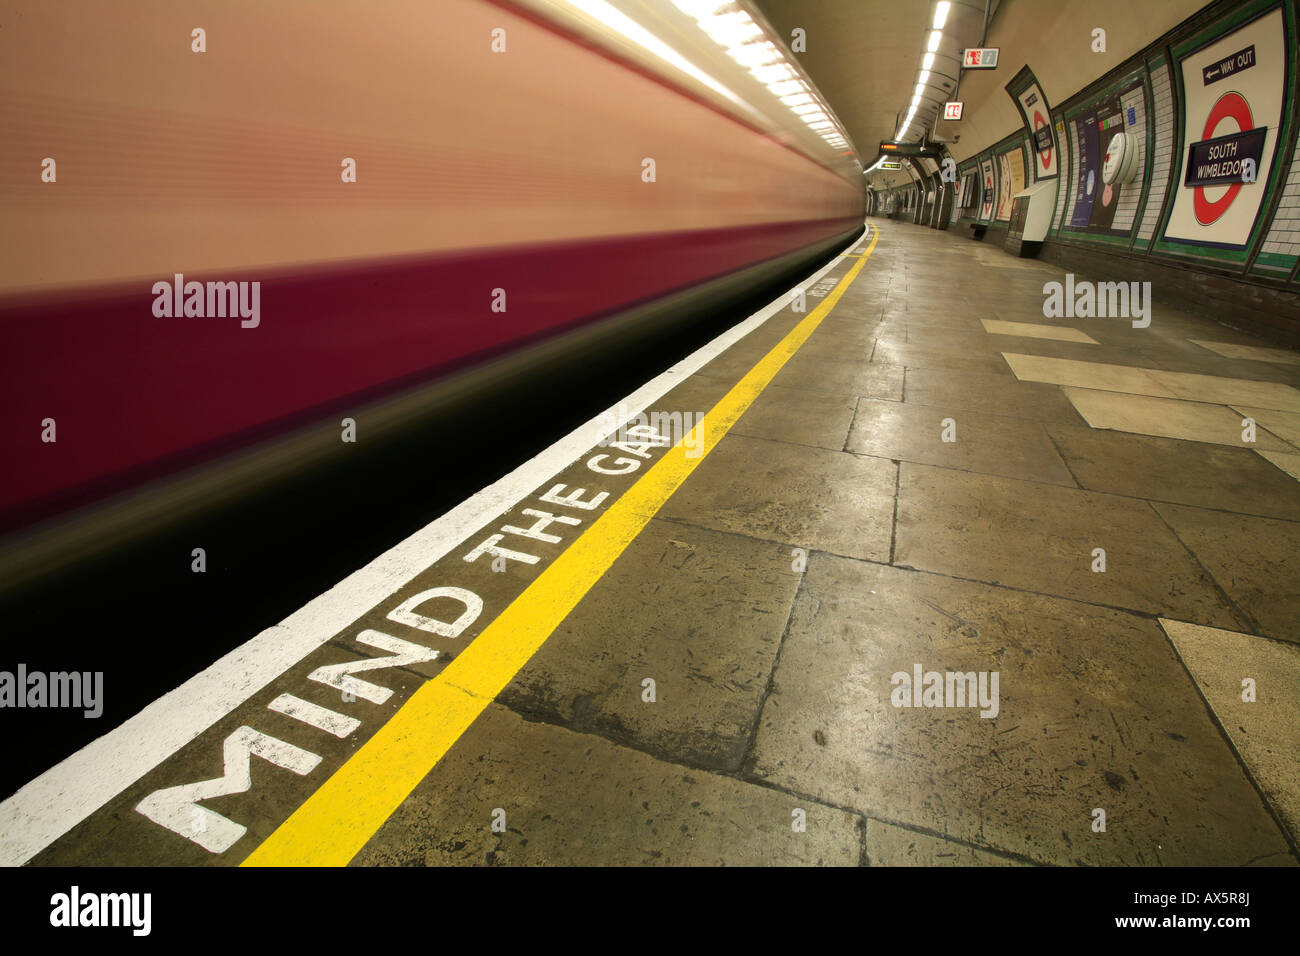 Mind the Gap - safety reminder and train coming through South Wimbledon underground station, London, England, UK, - Stock Image